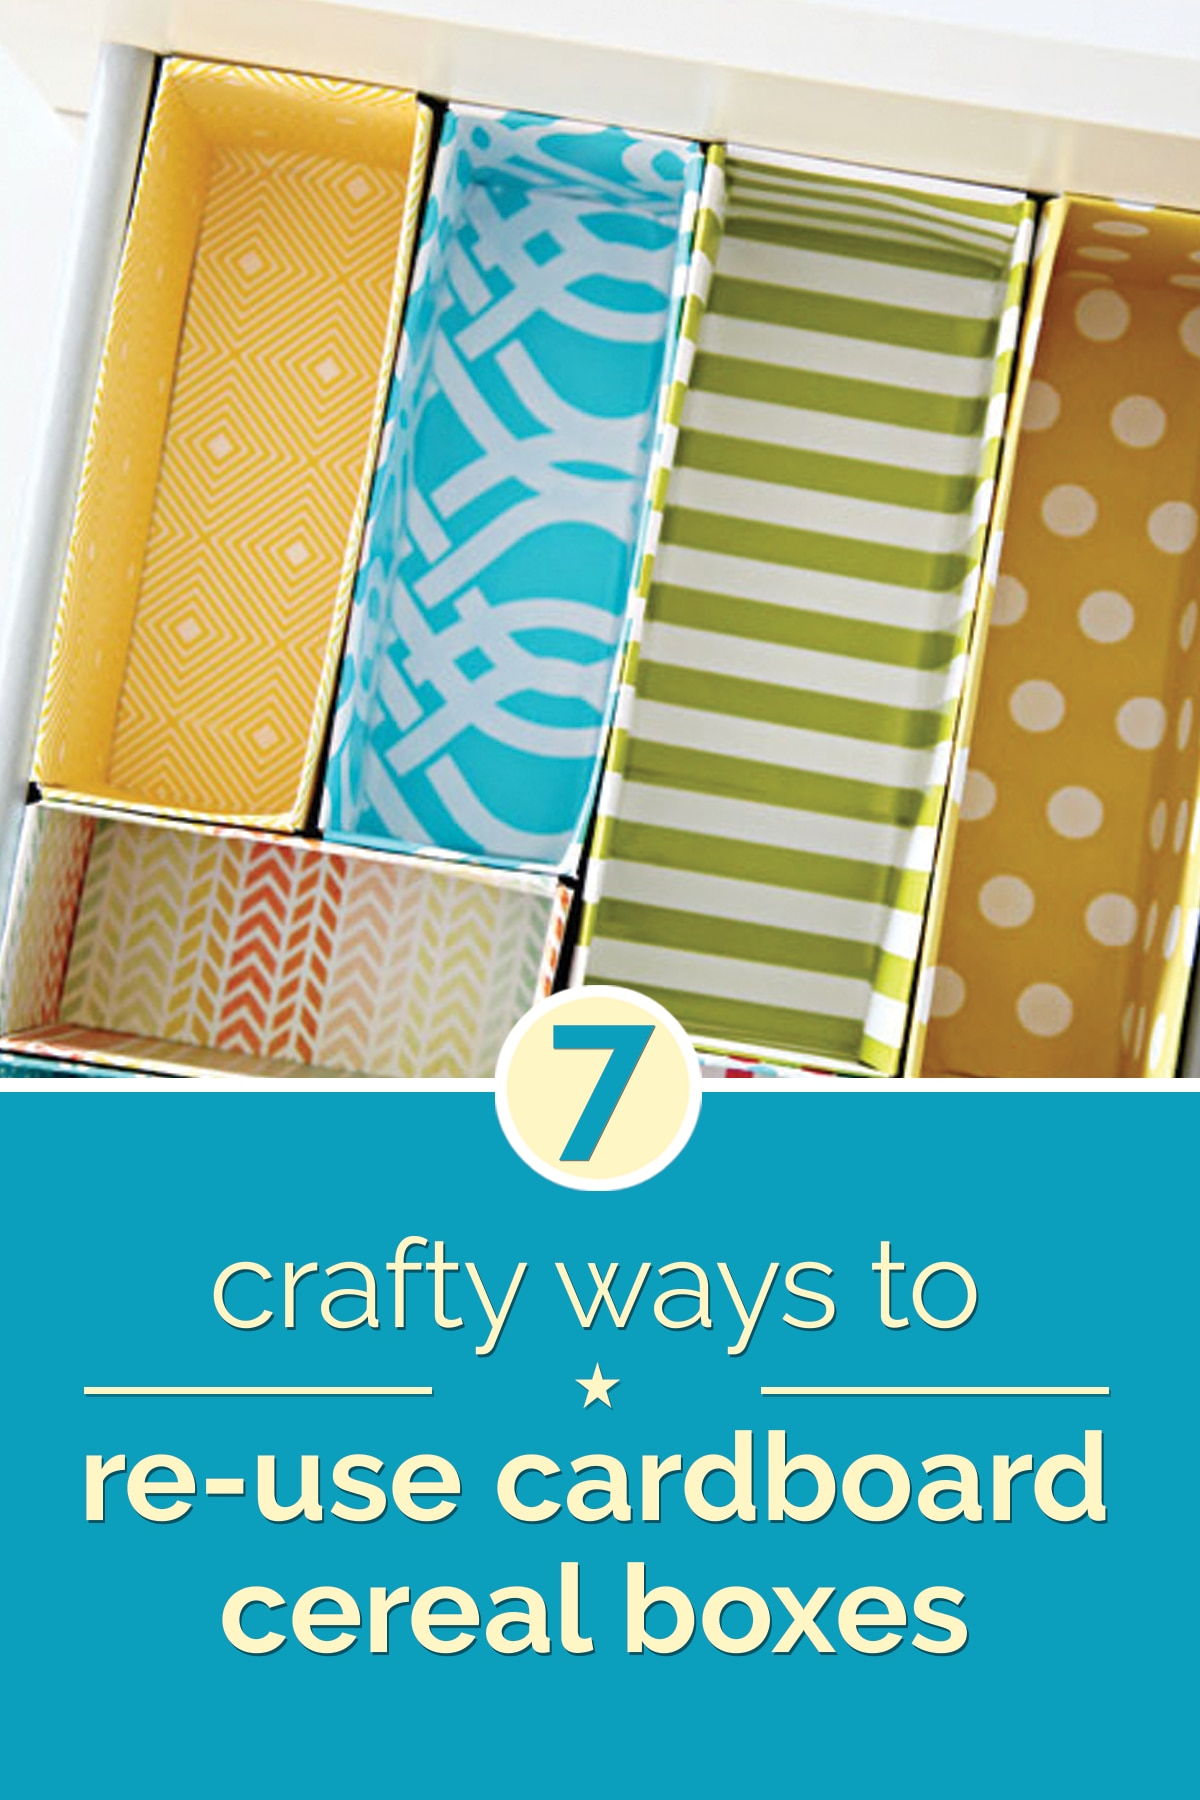 7 Crafty Ways to Reuse Cardboard Boxes | thegoodstuff